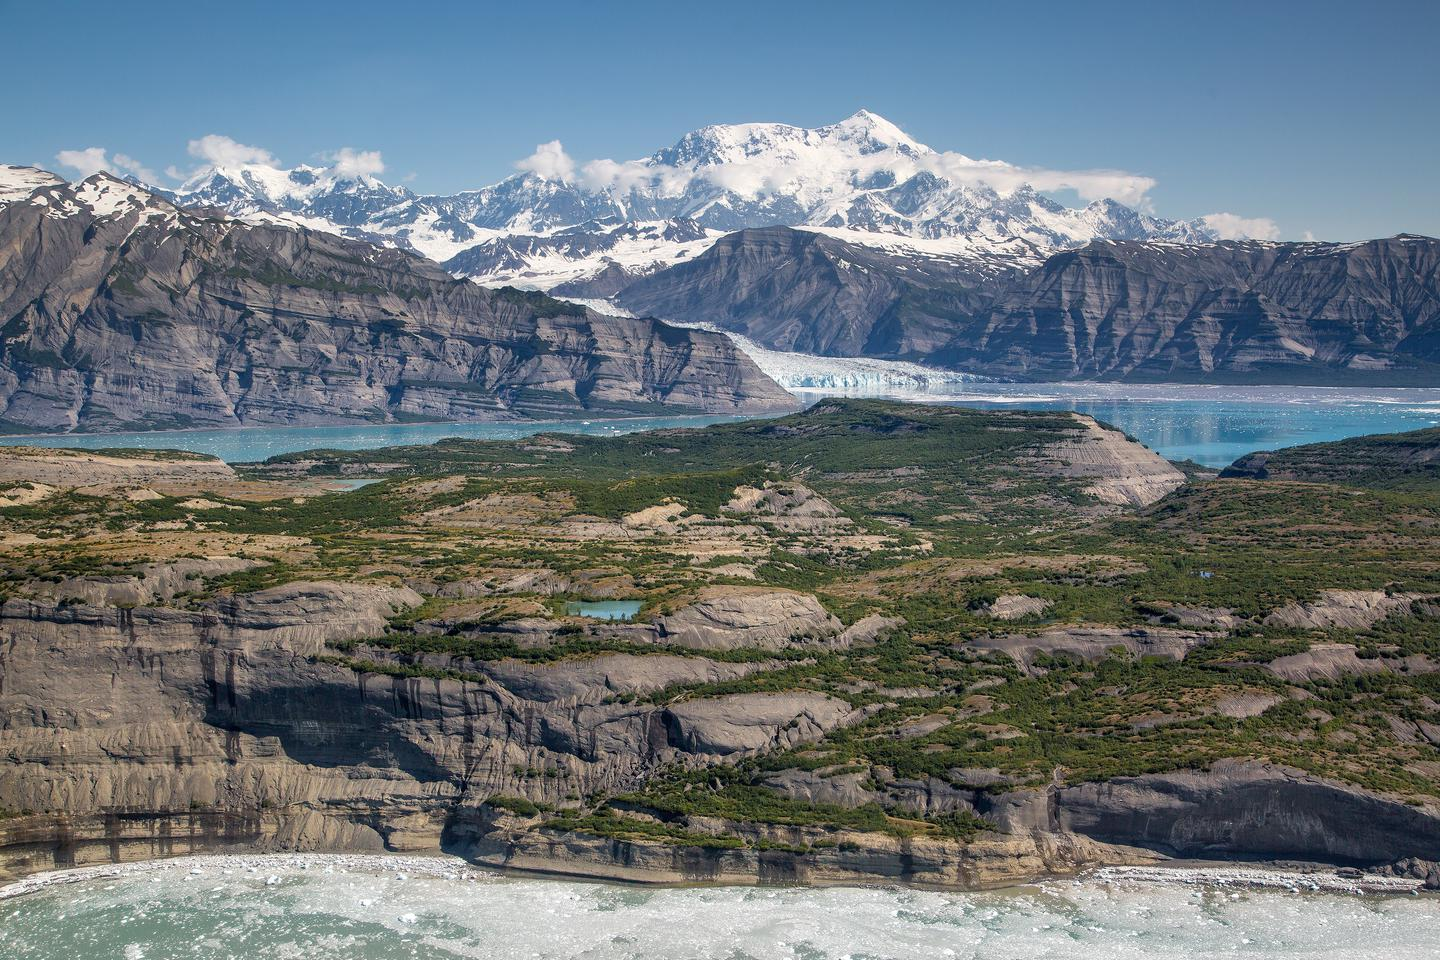 Preview photo of Wrangell - St Elias National Park & Preserve